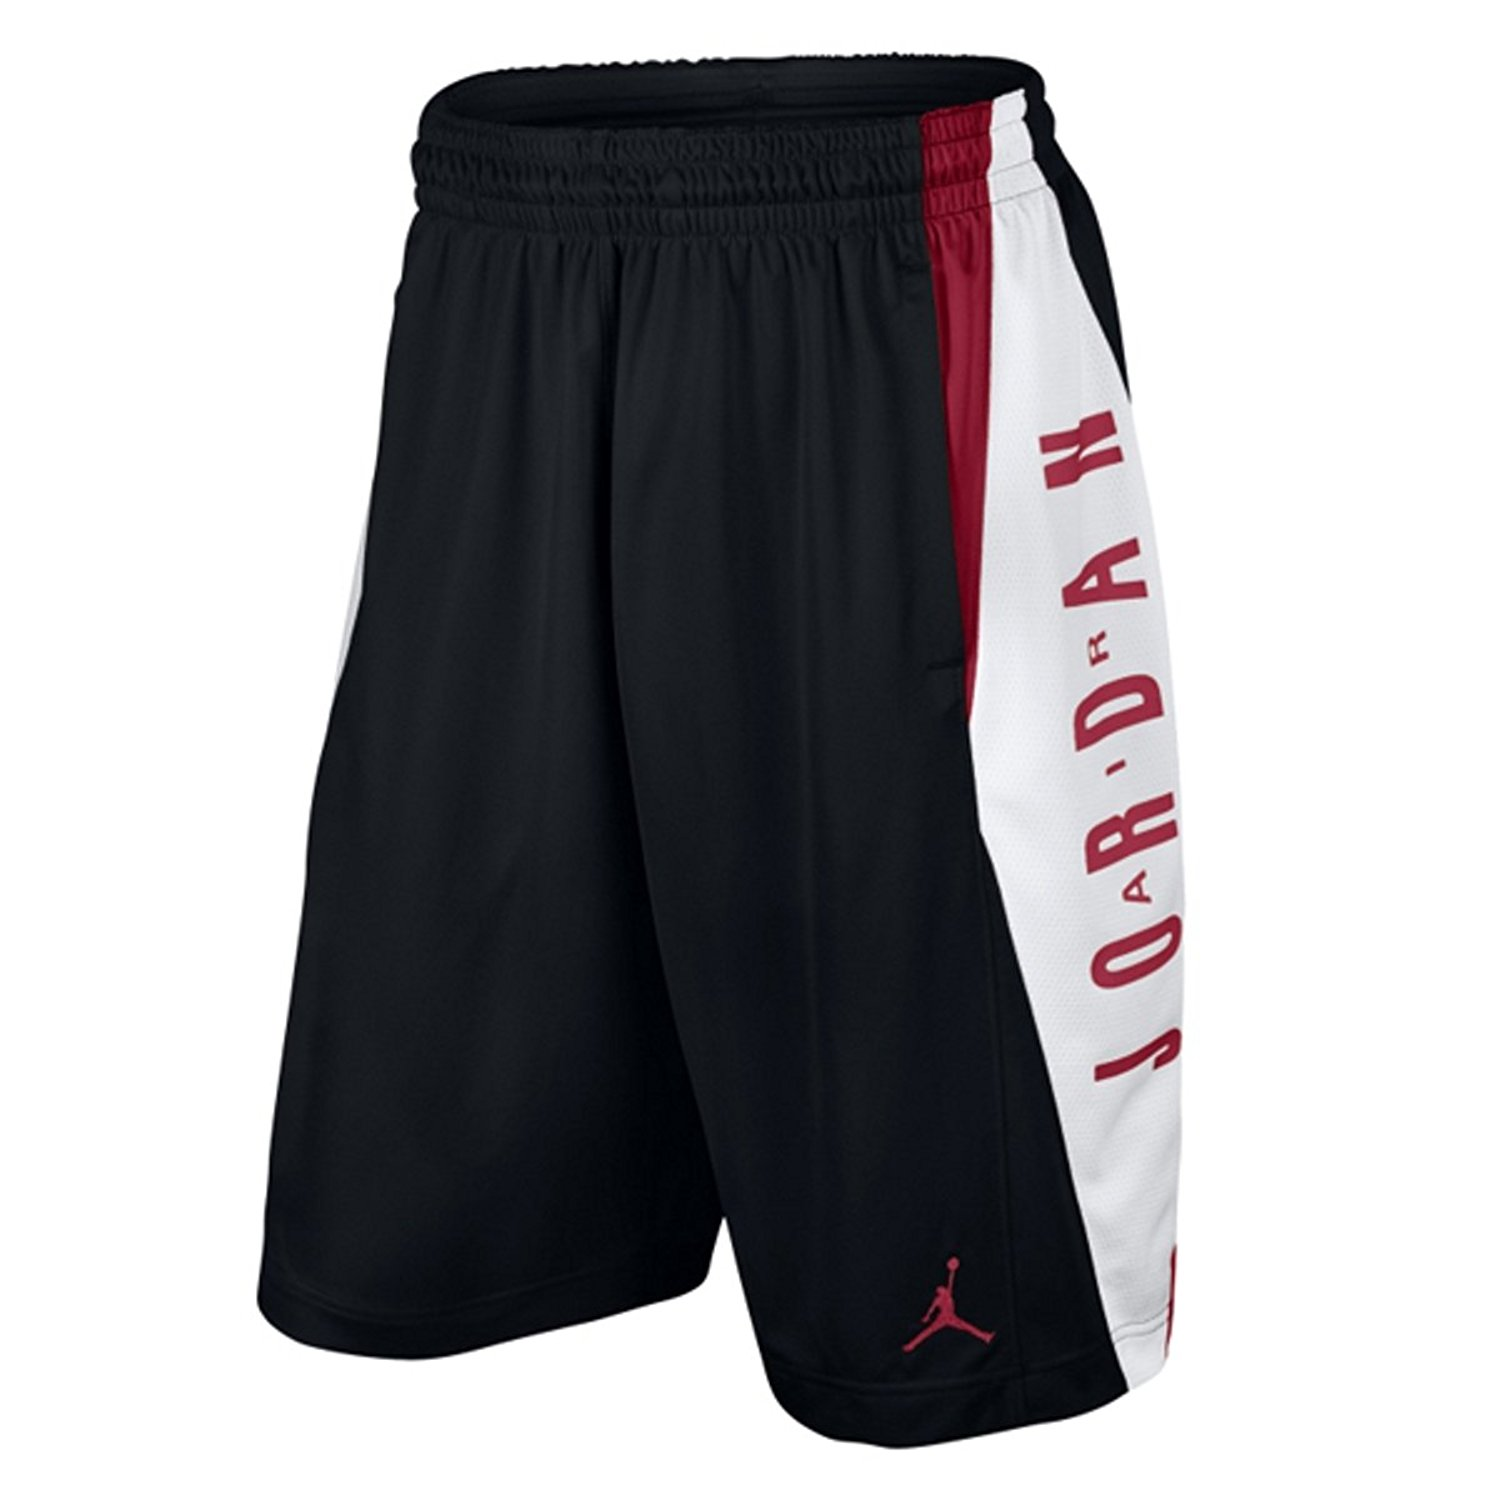 22cc338c3cf Get Quotations · Nike Jordan Takeover Shorts Mens Black/Gym Red/White  724831-011